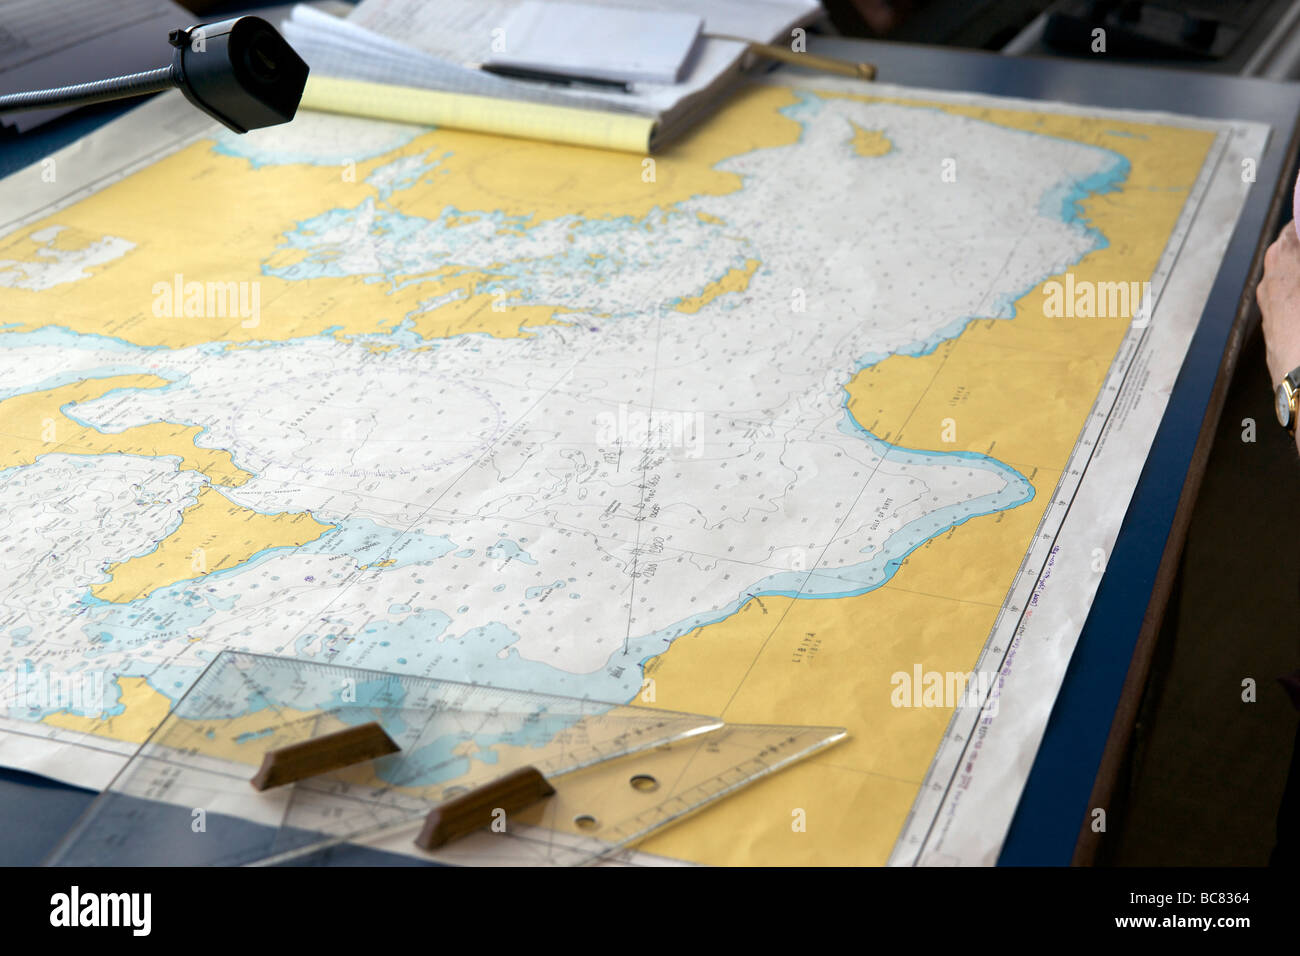 Ship's navigation chart showing plotted course and position from Libya to Crete. - Stock Image